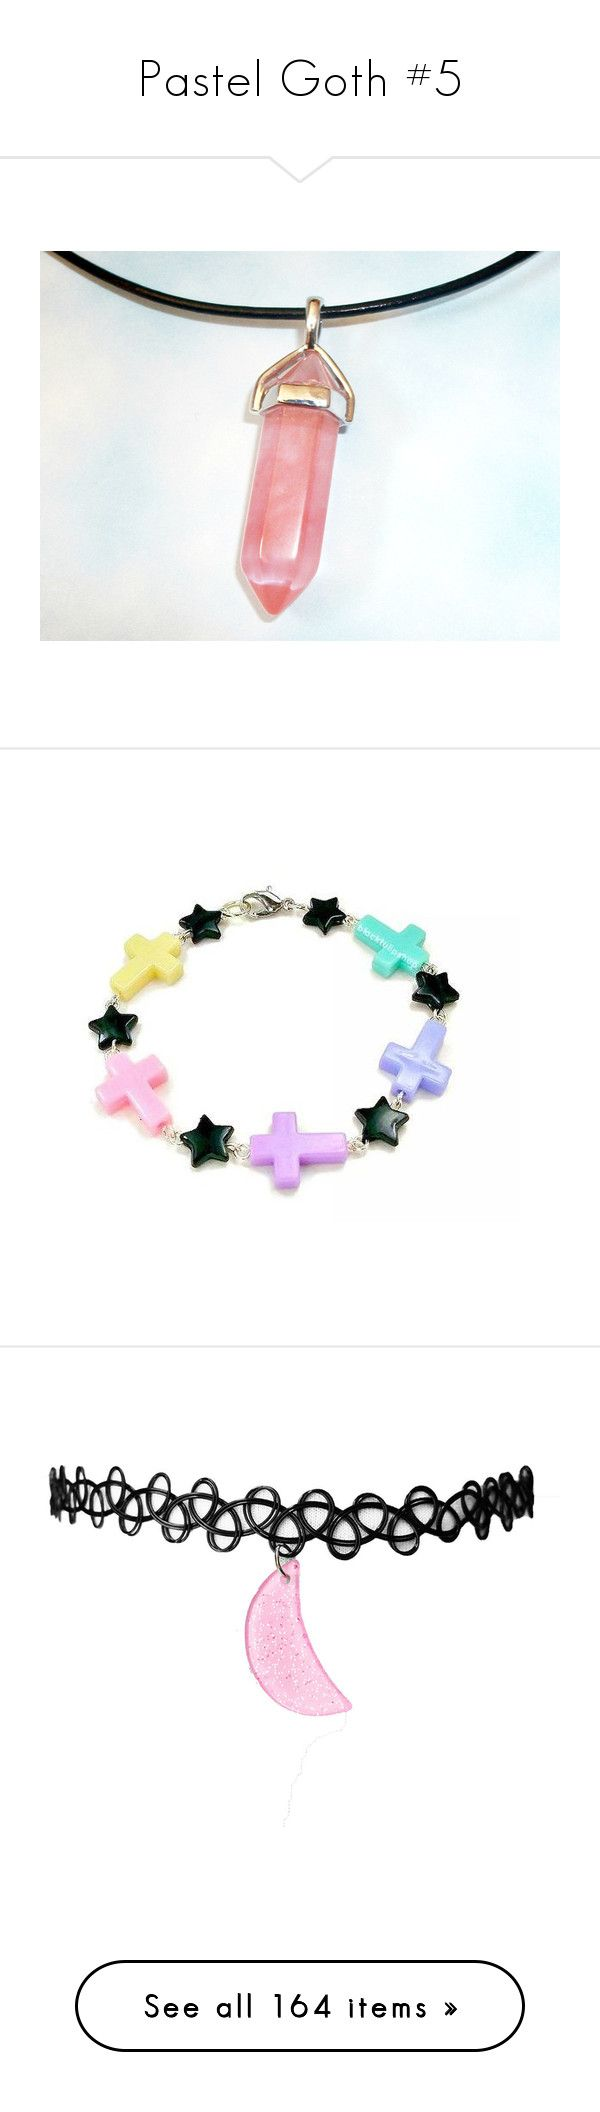 """""""Pastel Goth #5"""" by ironically-a-strider21 ❤ liked on Polyvore featuring jewelry, necklaces, crystal jewelry, peach necklace, black necklace, black leather necklace, black crystal necklace, bracelets, multi colored bracelet and star jewelry"""